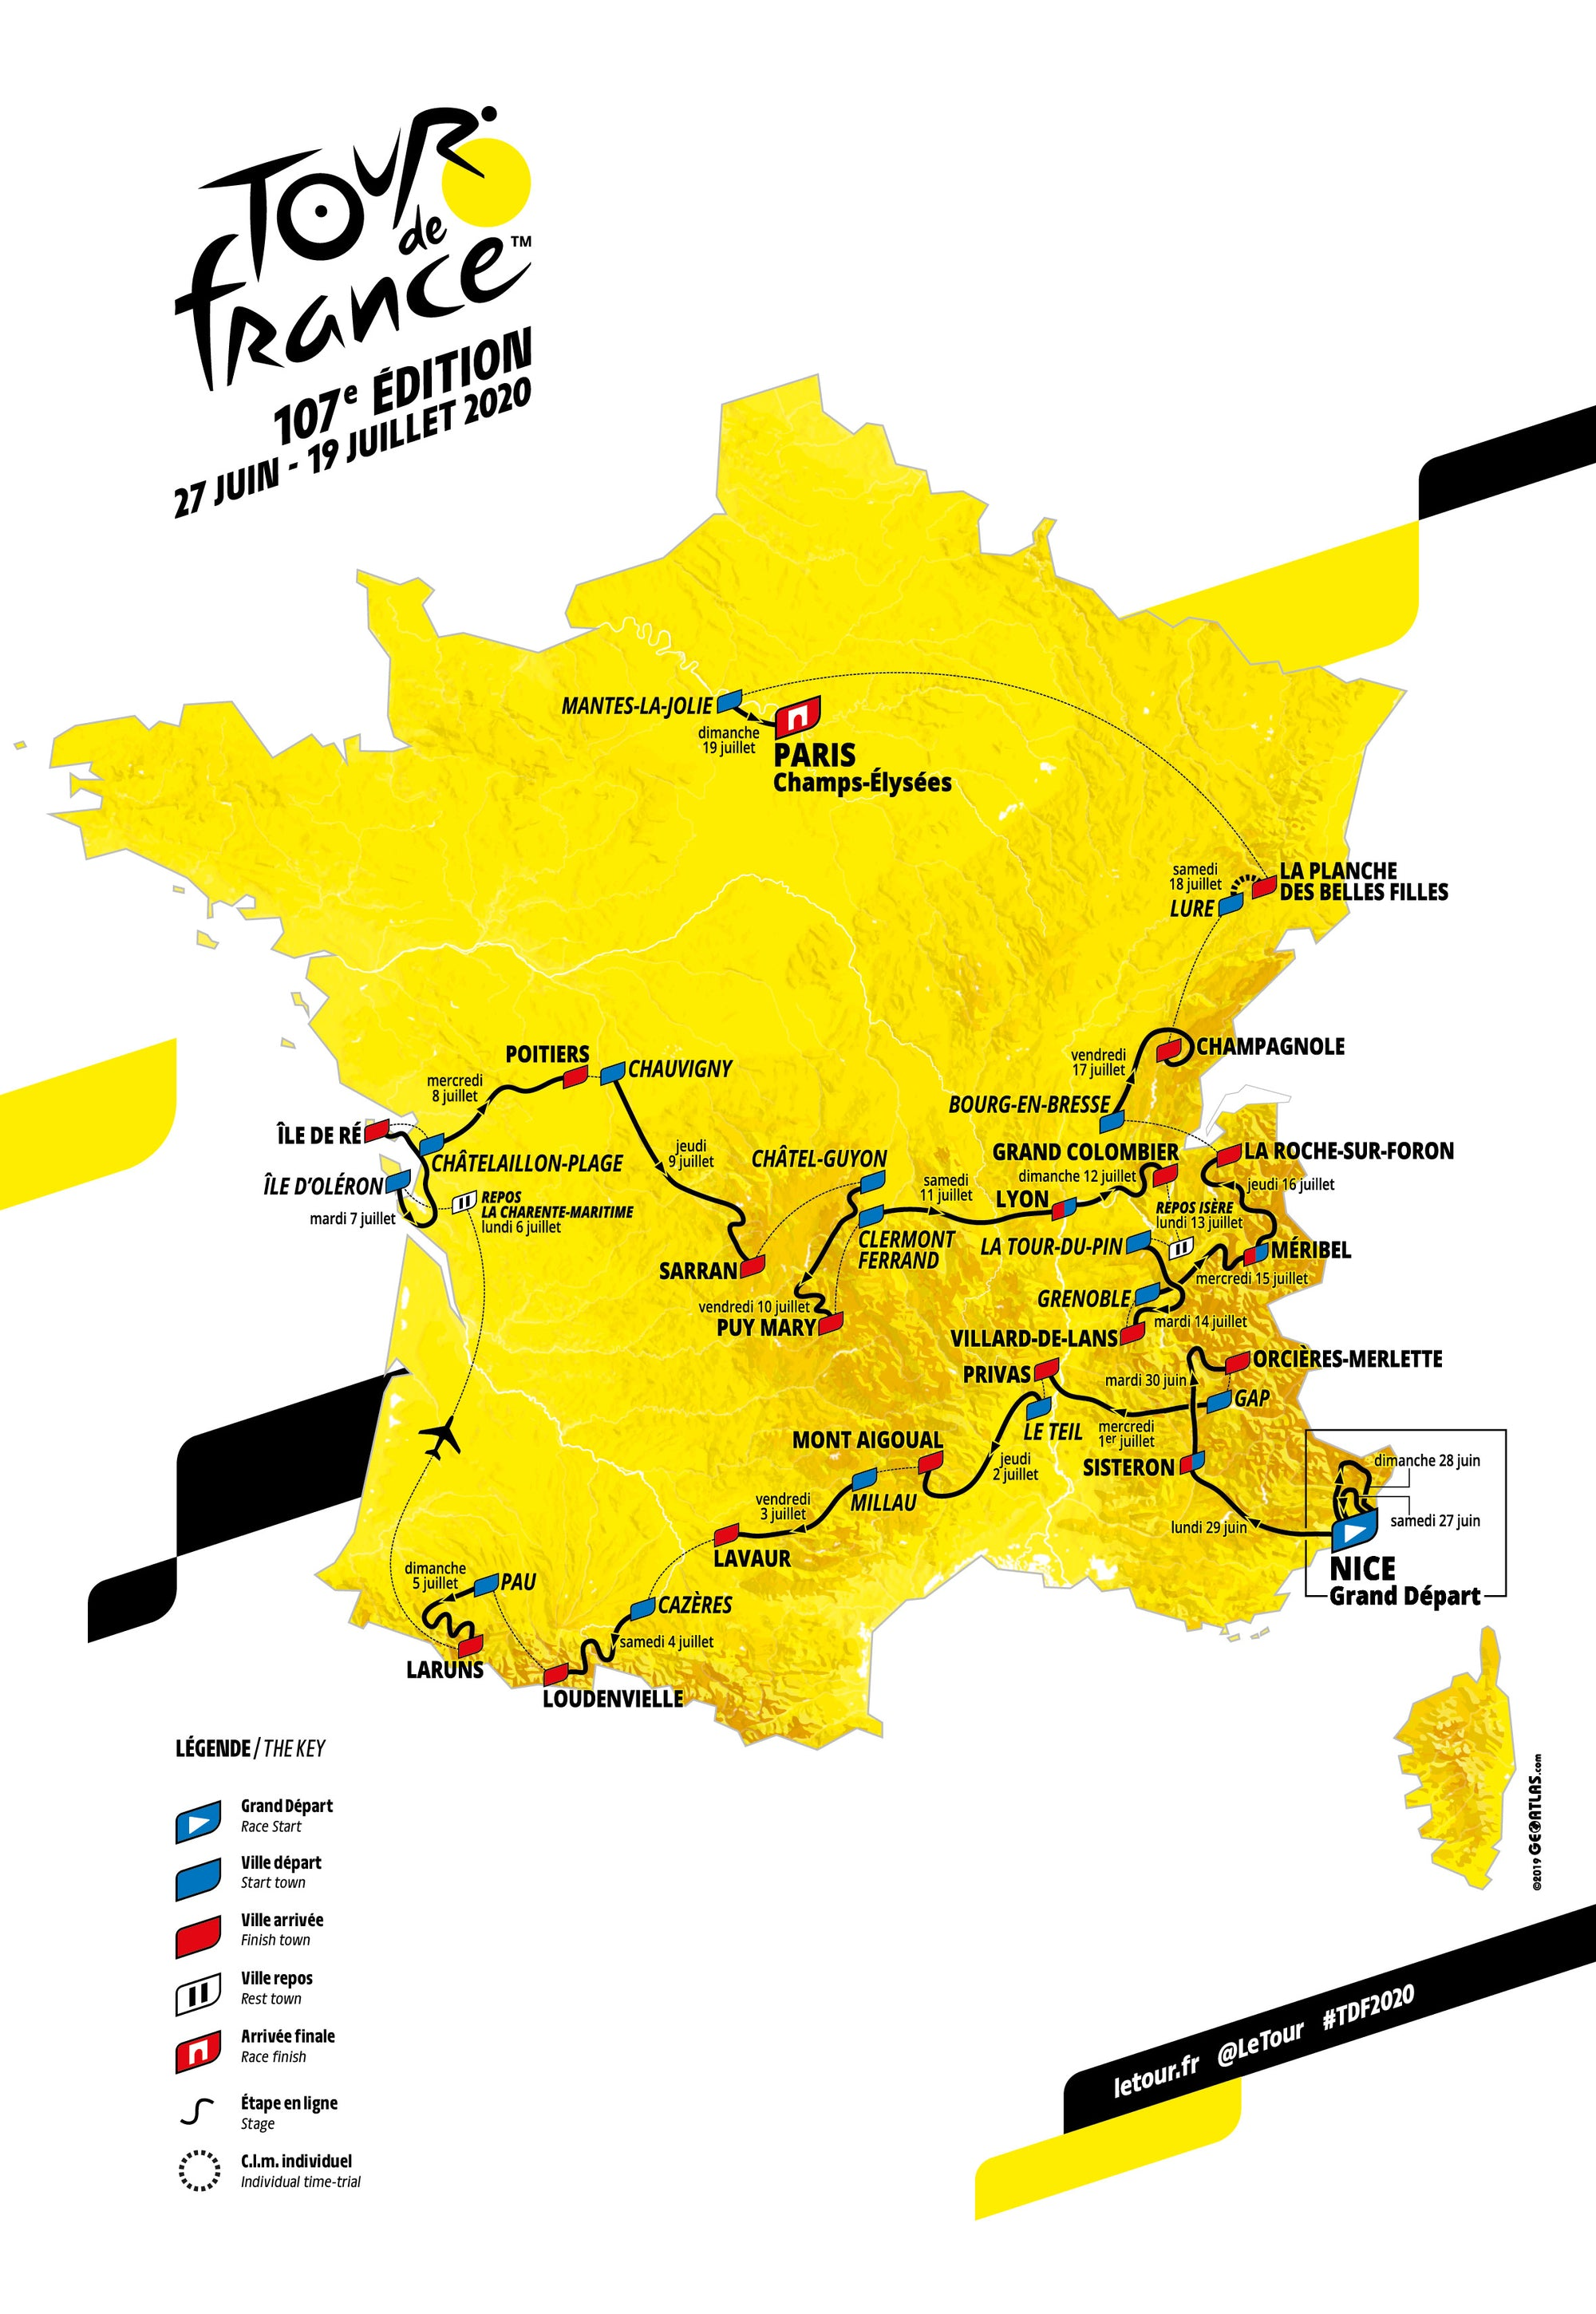 Tour de France 2020 - Route Presentation - Paris 15.10.19